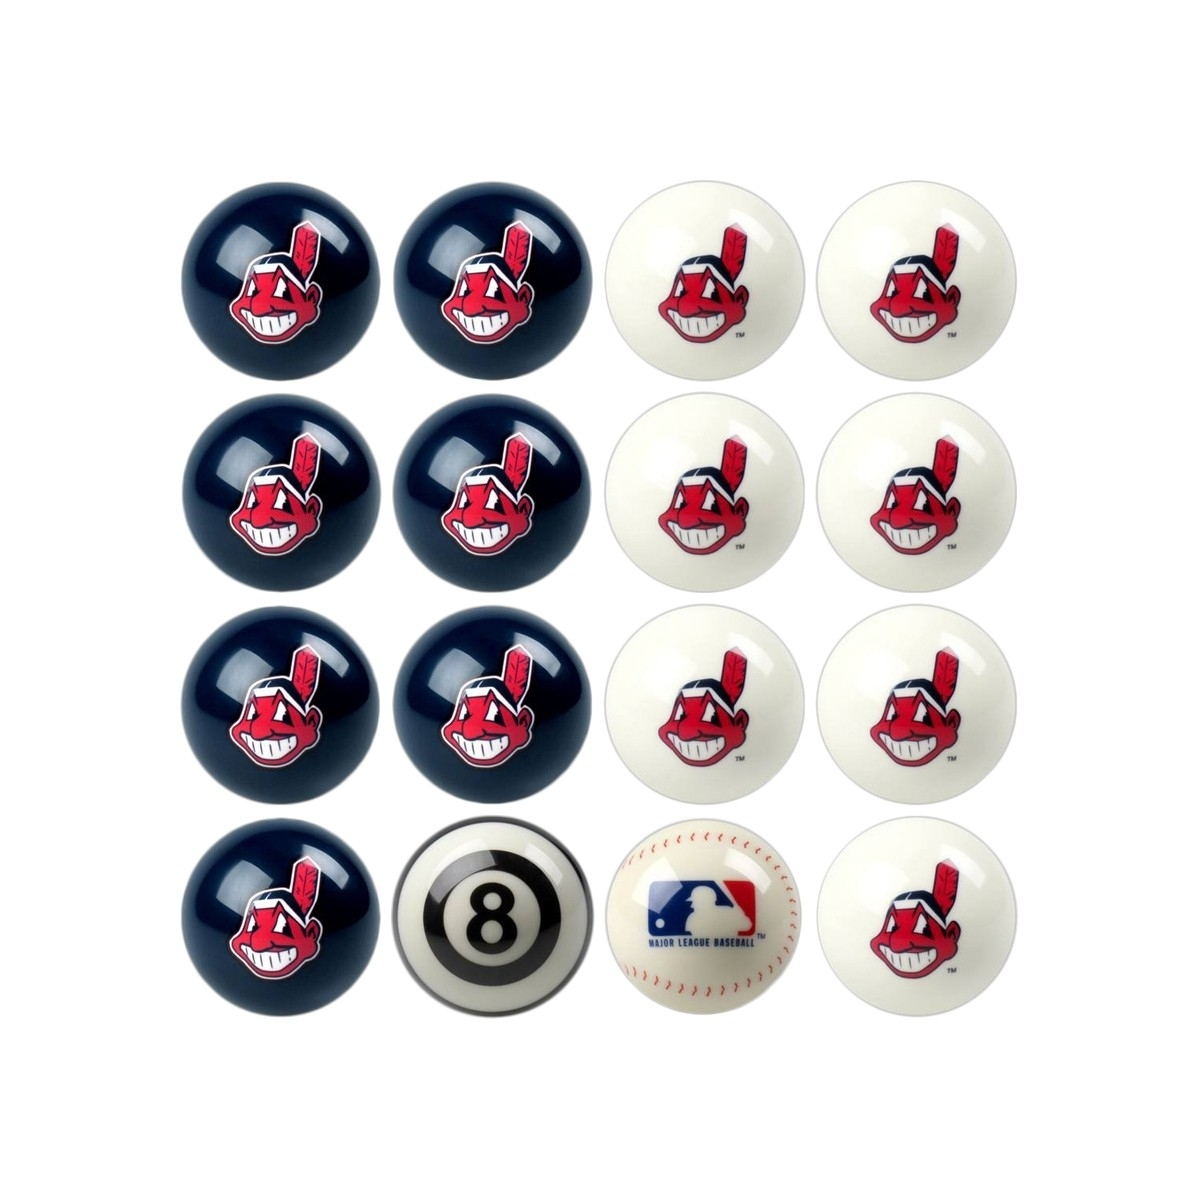 Cleveland Indians Home Vs. Away Billiard Ball Set - 50-2104 - Toys Tables And Chairs 50-2104